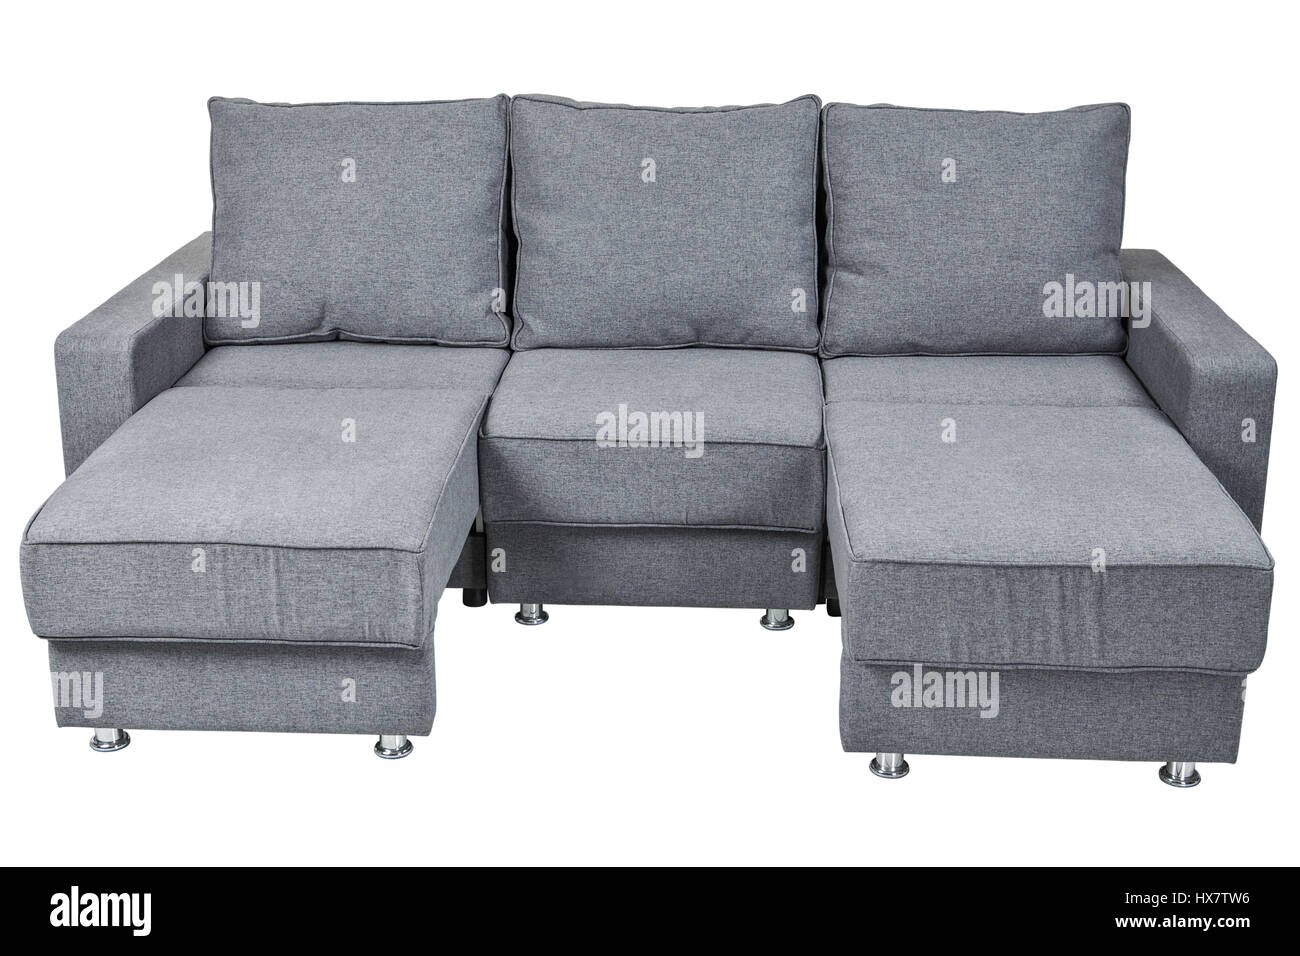 Adjustable Sofa Bed Stockfotos & Adjustable Sofa Bed Bilder - Alamy